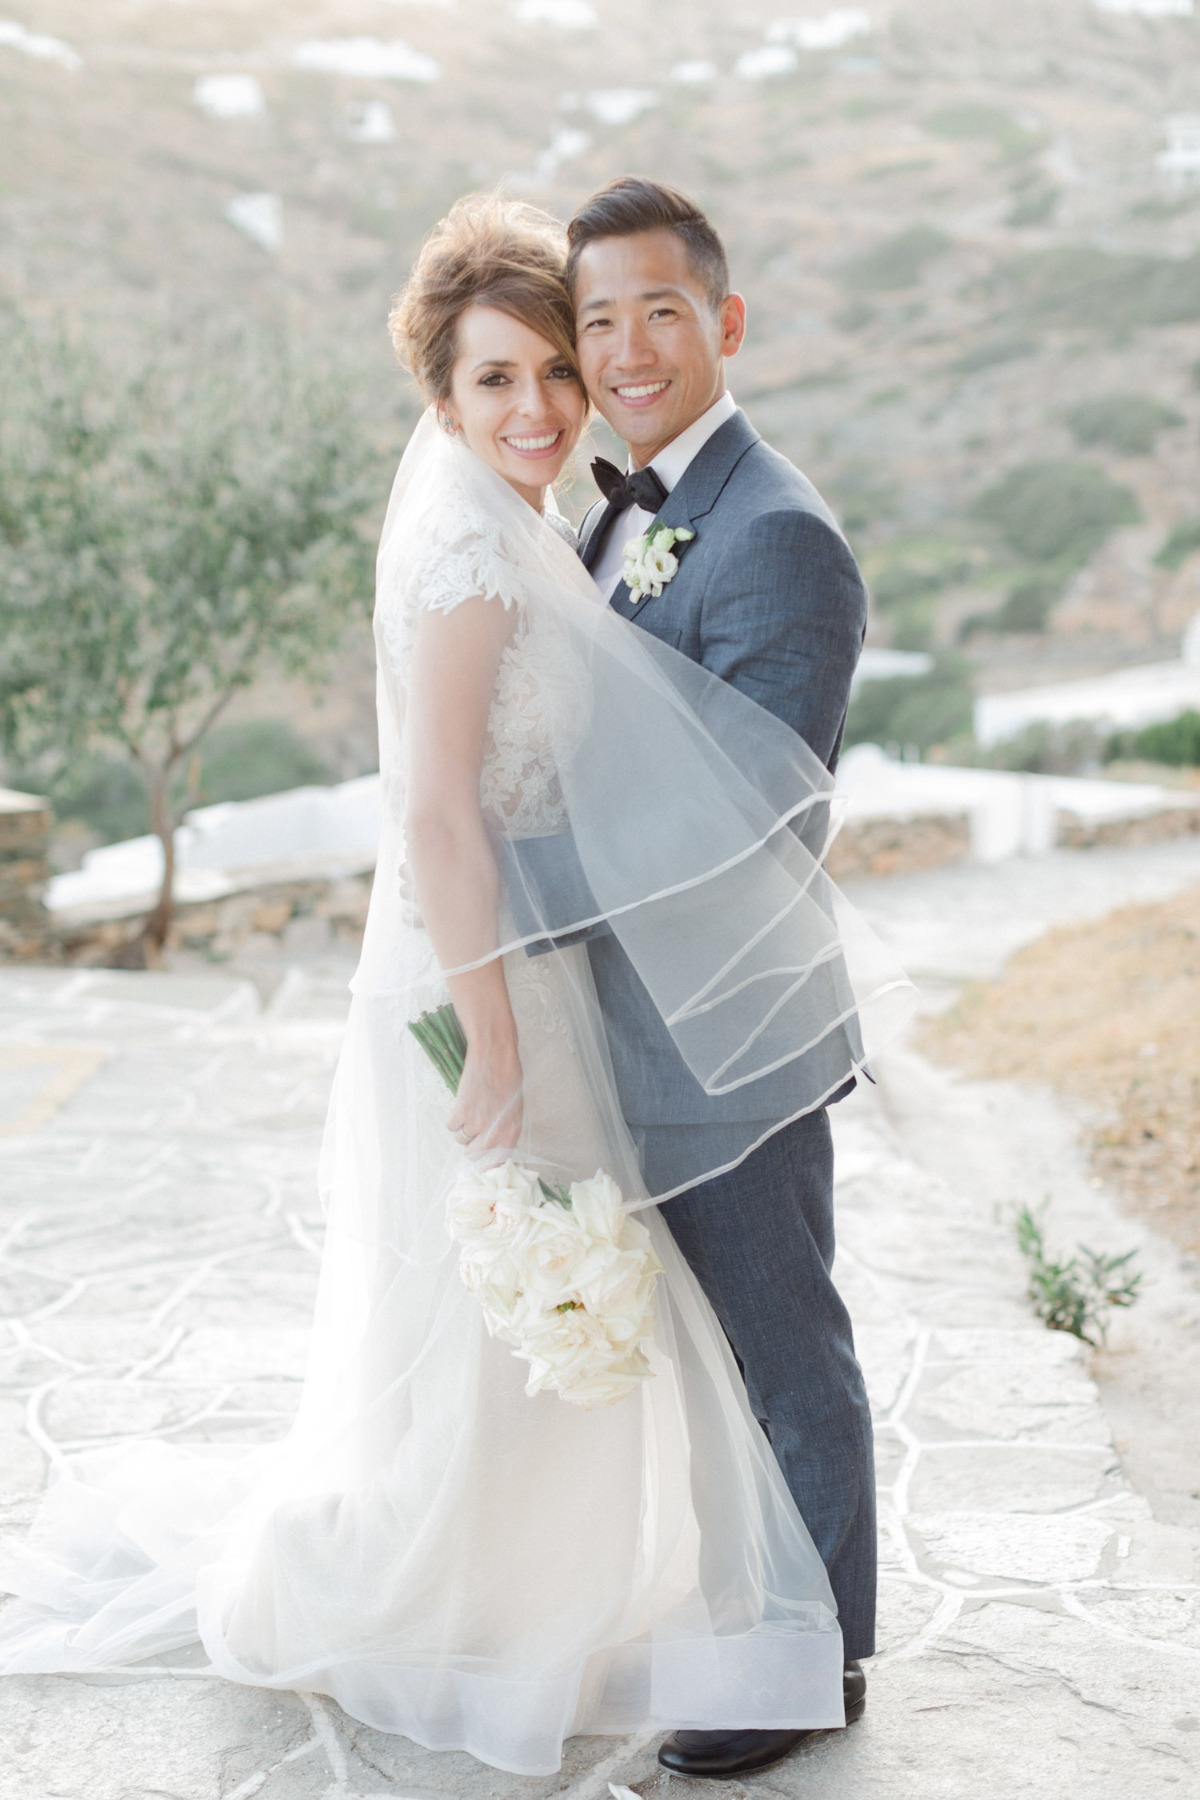 Katerina and Dominique's Greece wedding